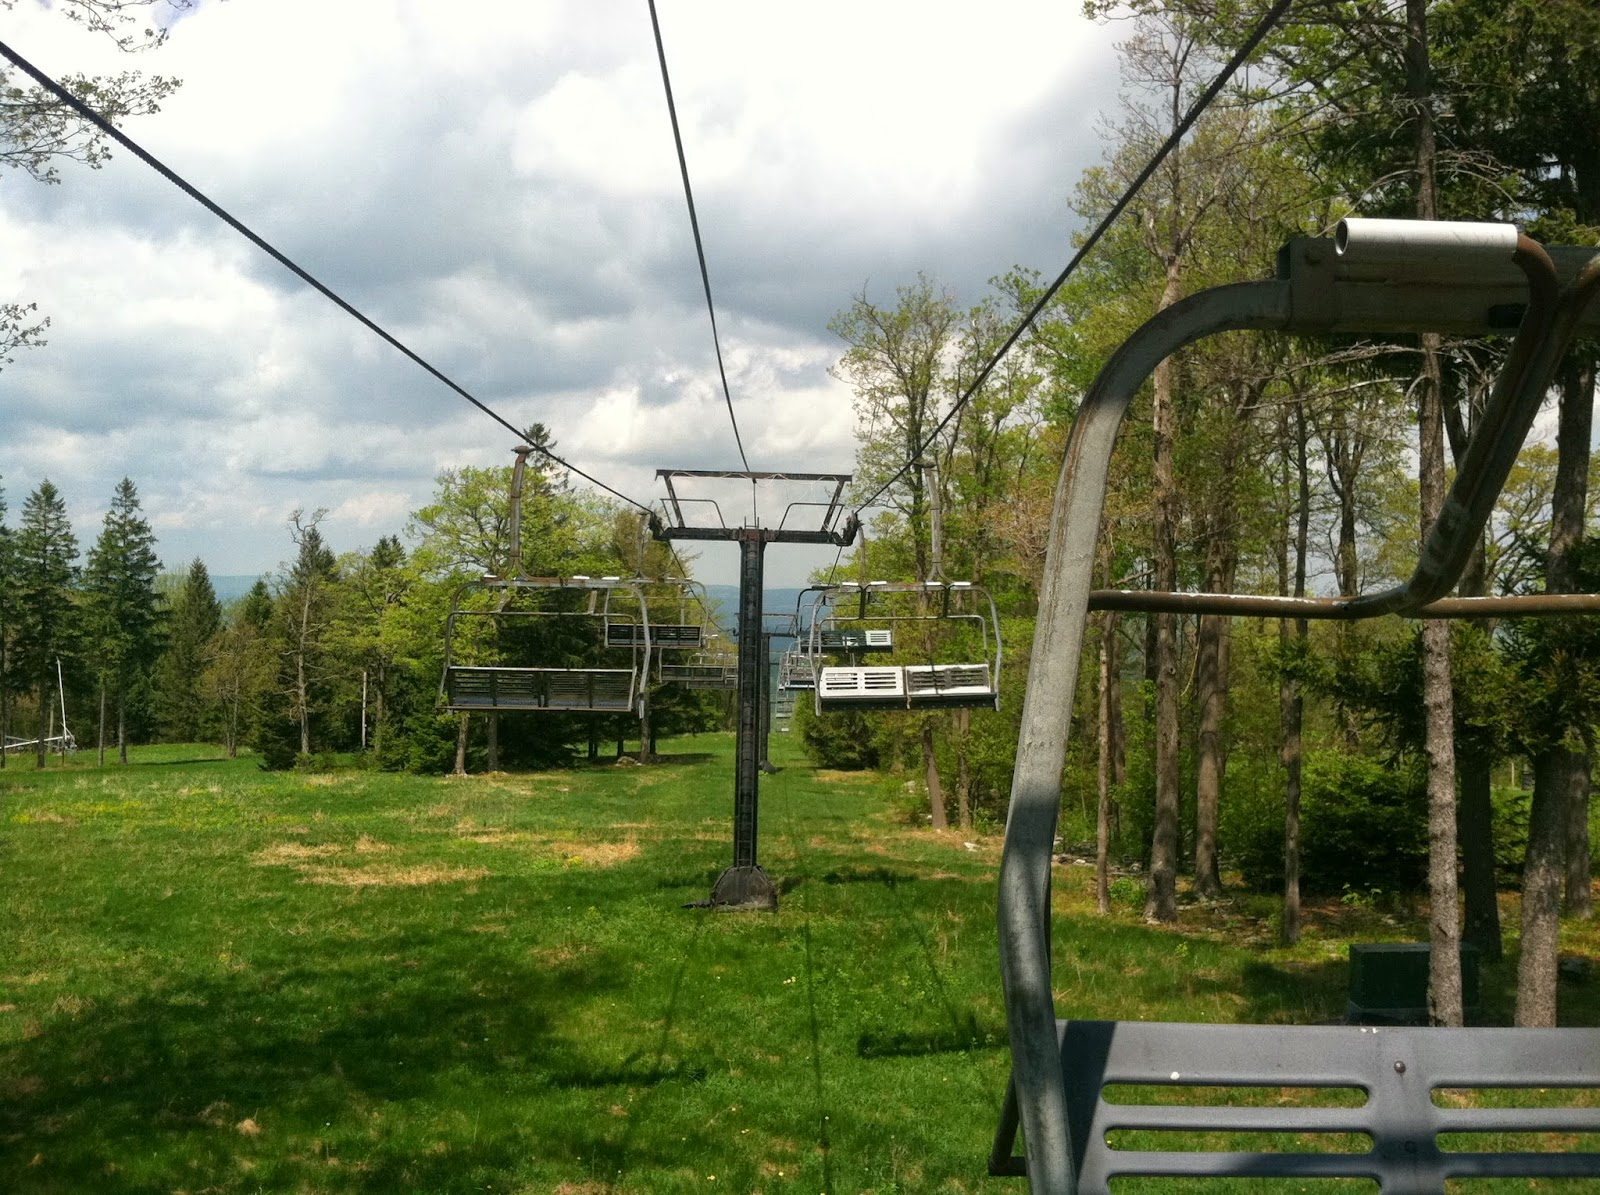 snow and jaggers: laurel mountain state park: the abandoned ski resort